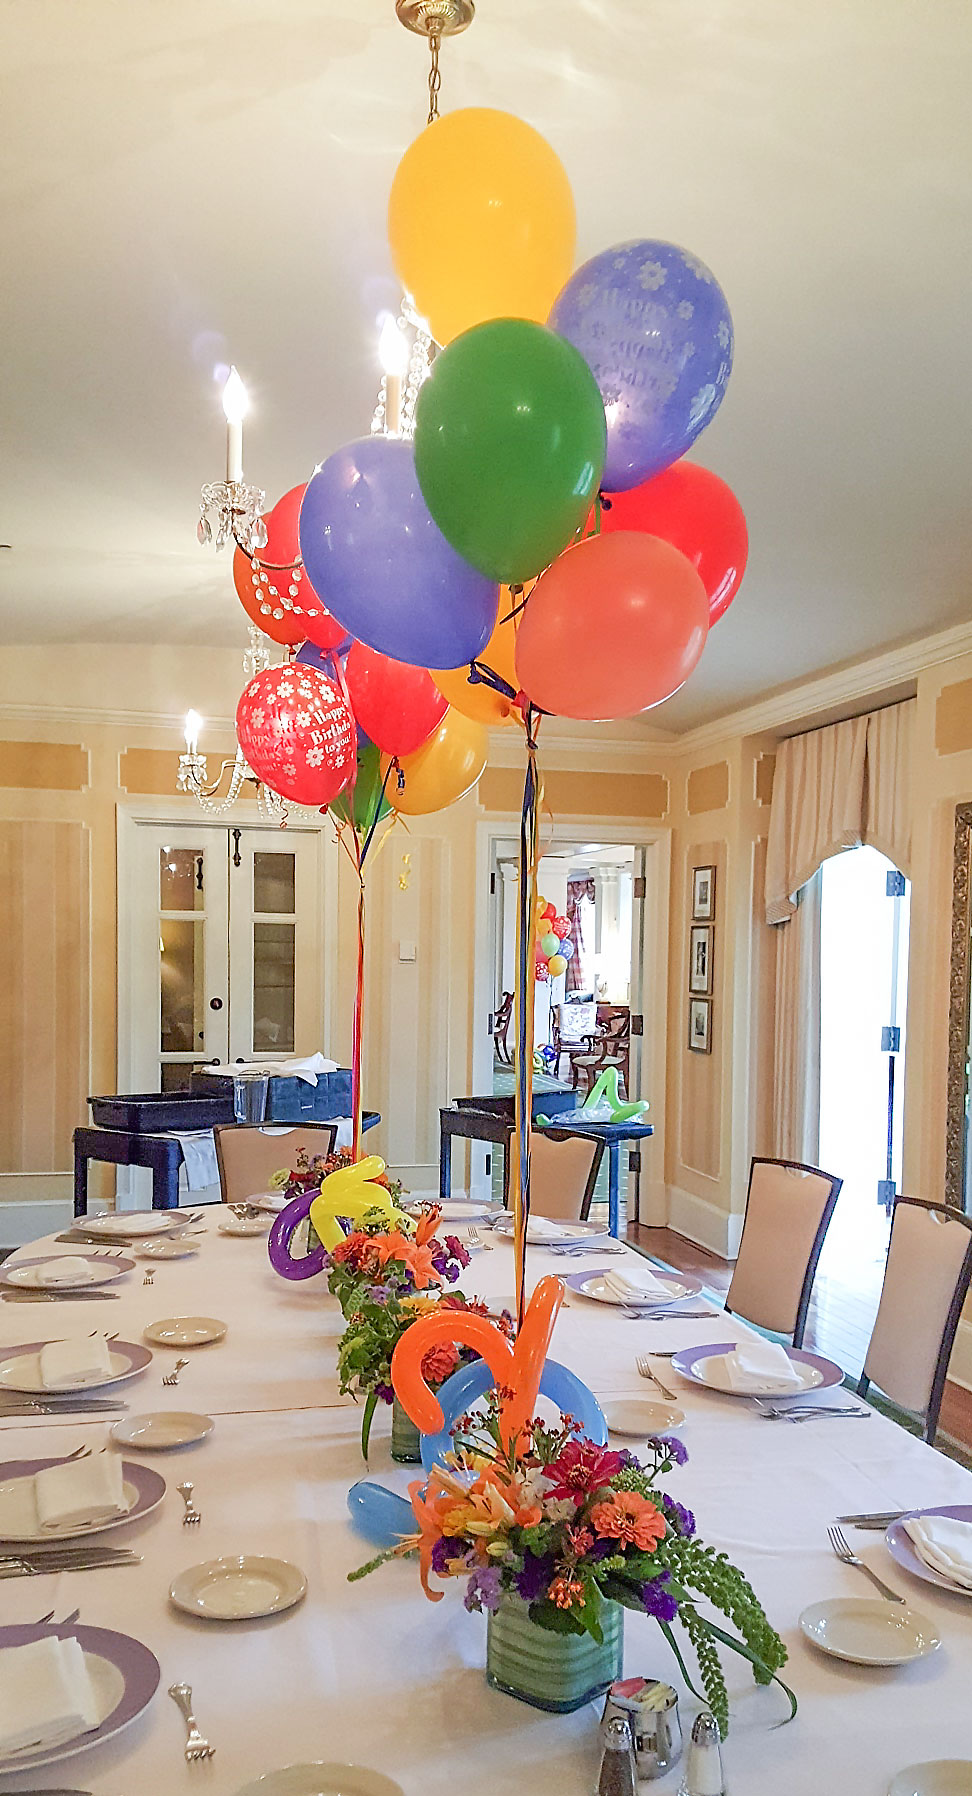 Birthday Fun with Balloon and Local Summer Flowers